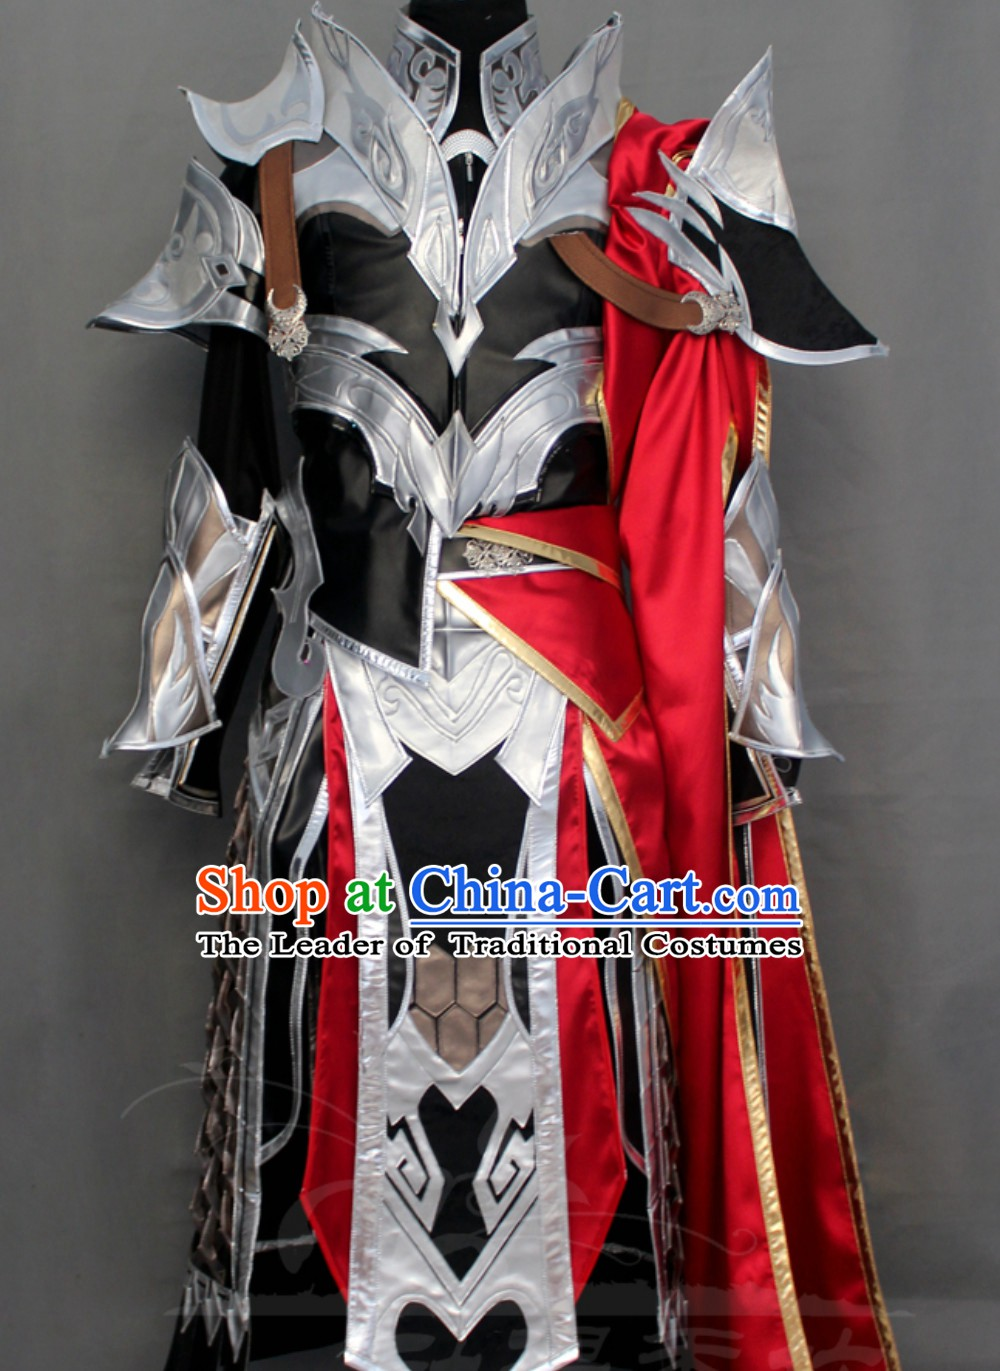 Superhero Armor Style Costumes Complete Set for Men